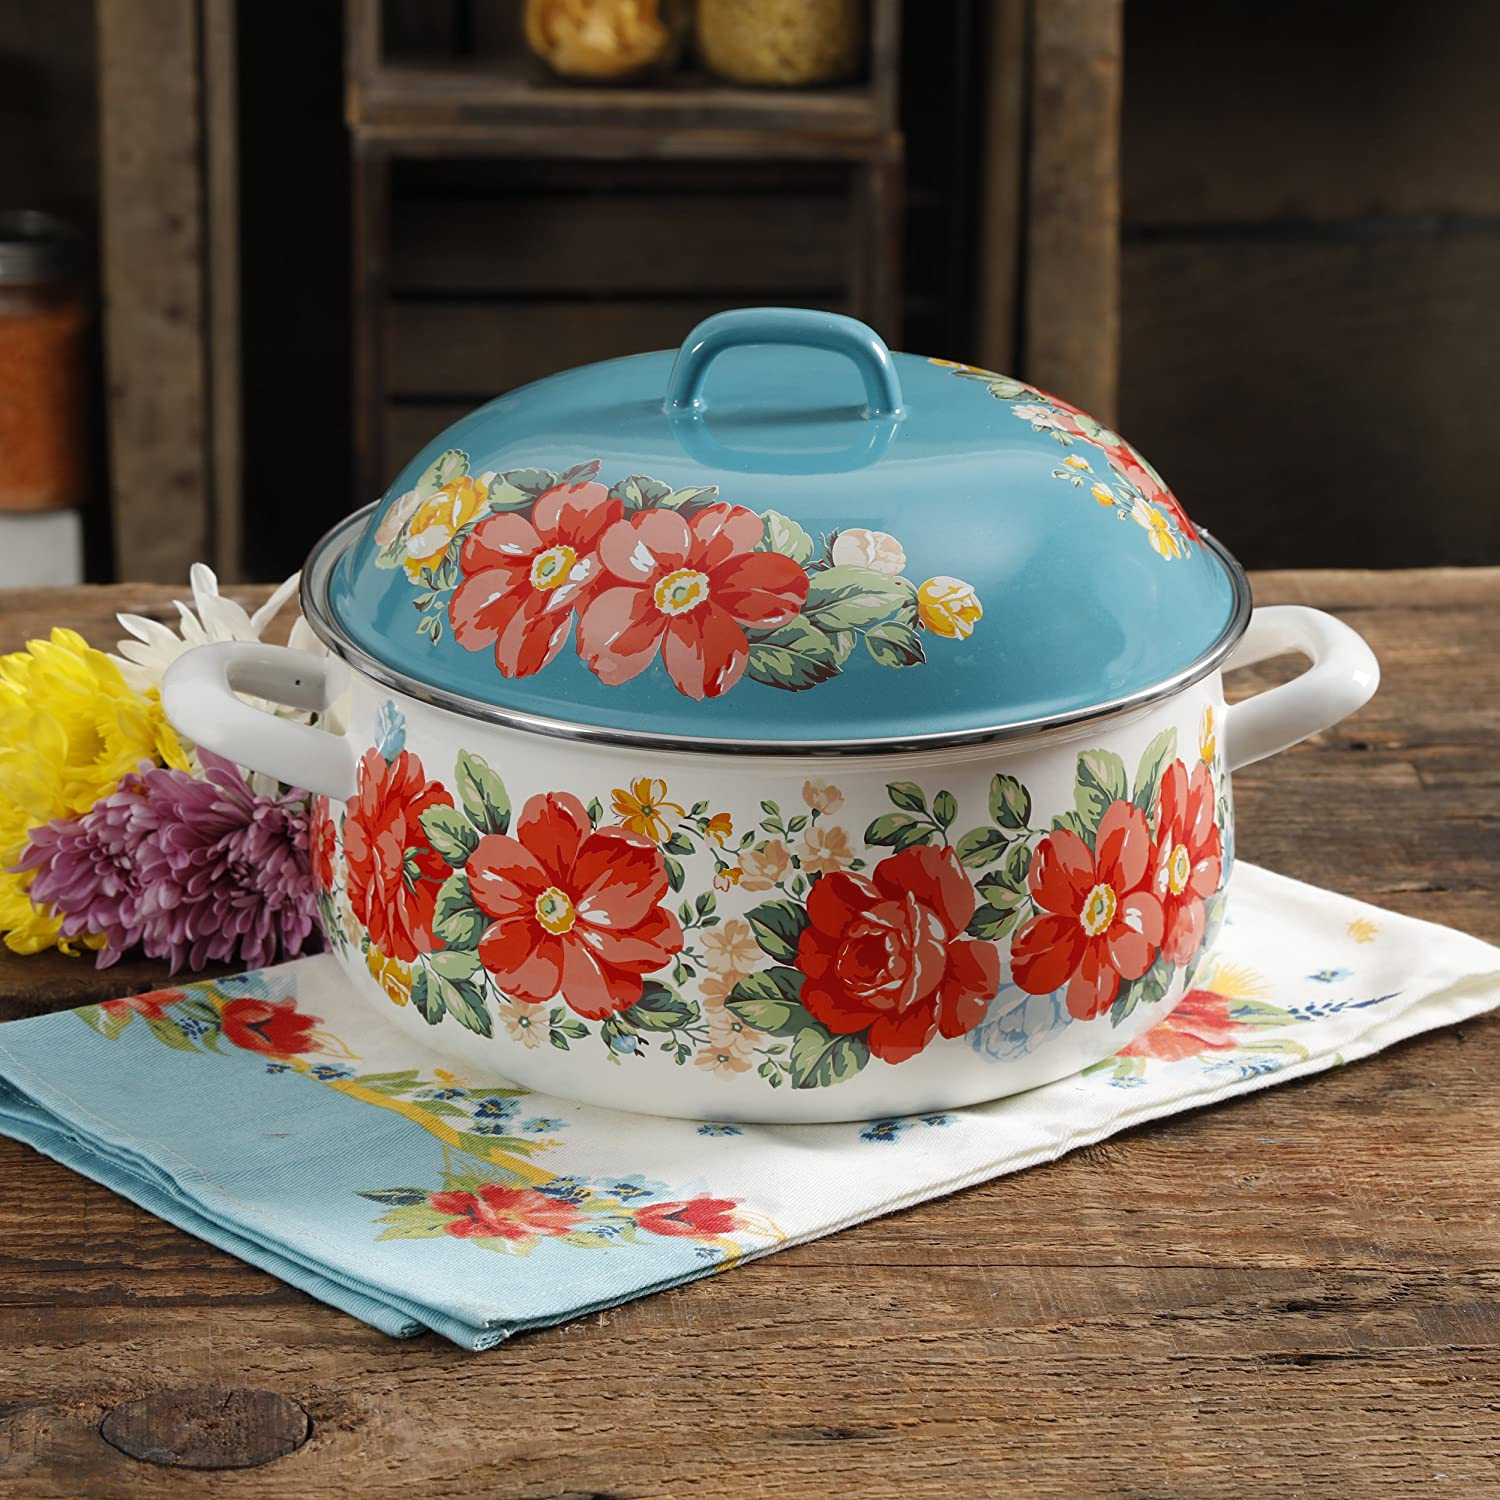 The Pioneer Woman Vintage Floral 4-Quart Dutch Oven